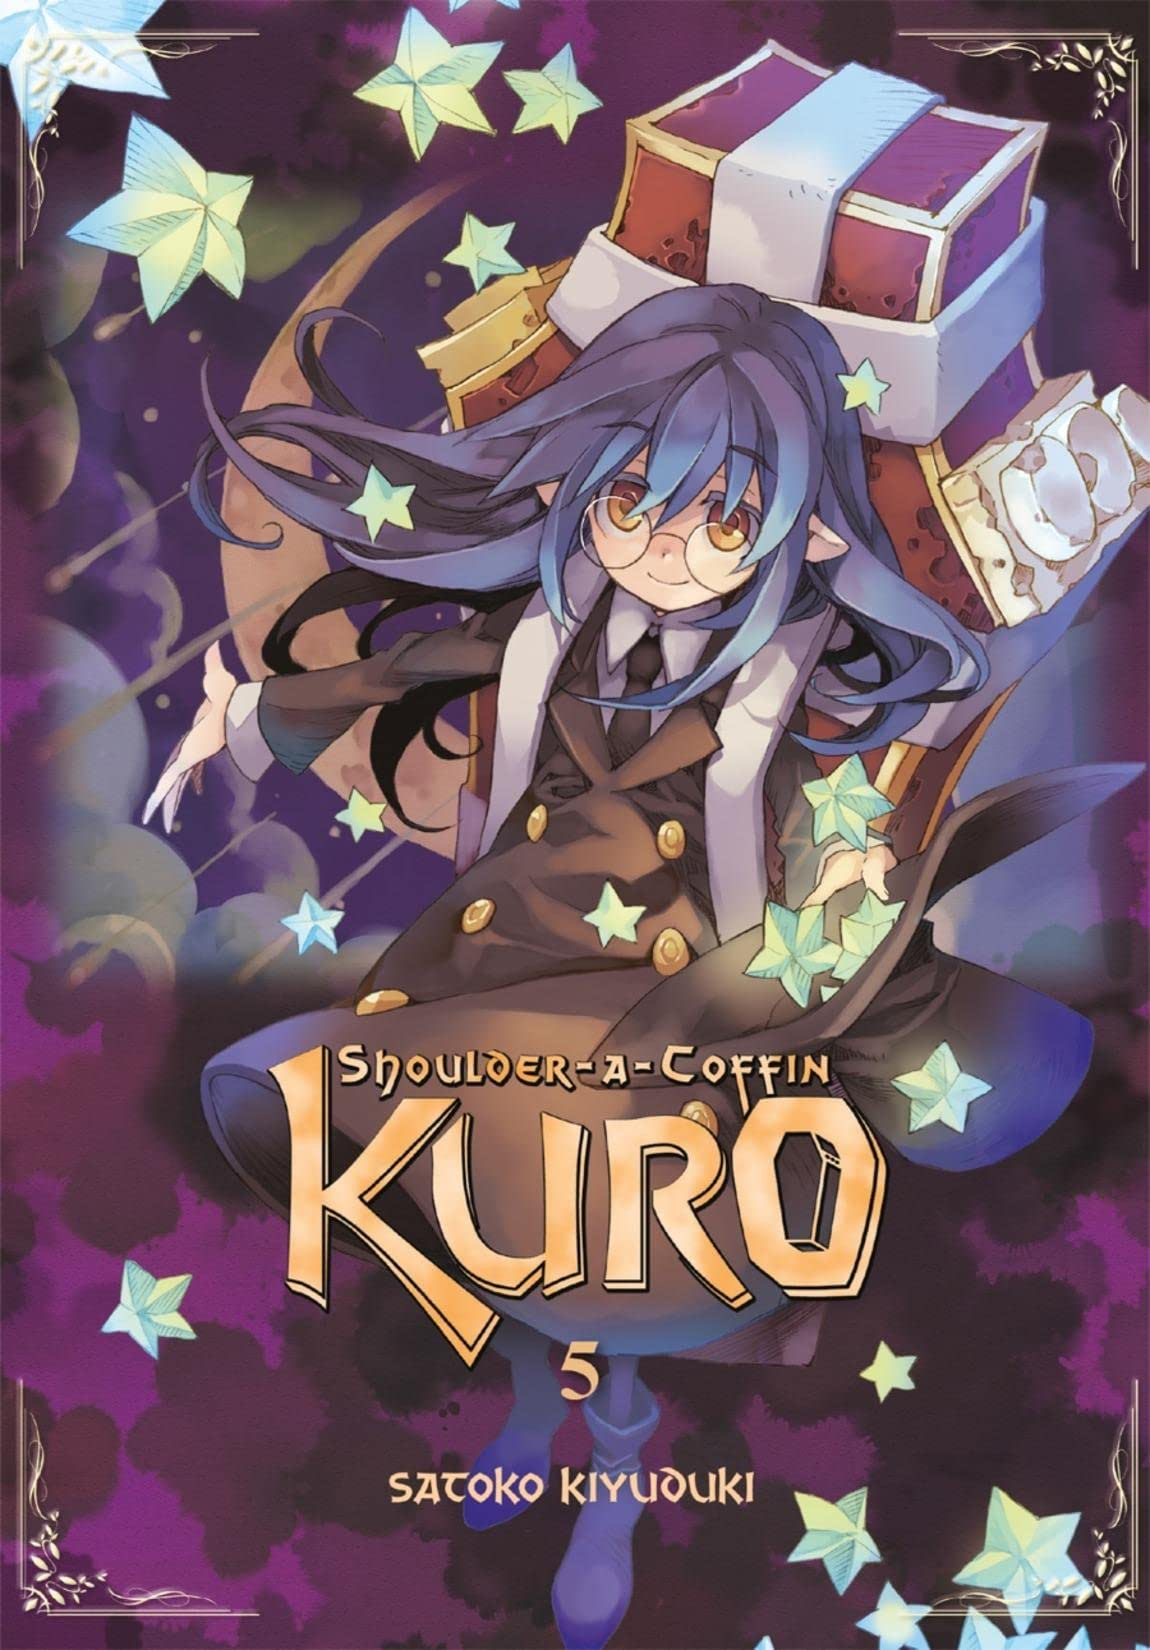 Shoulder-a-Coffin Kuro Vol. 5